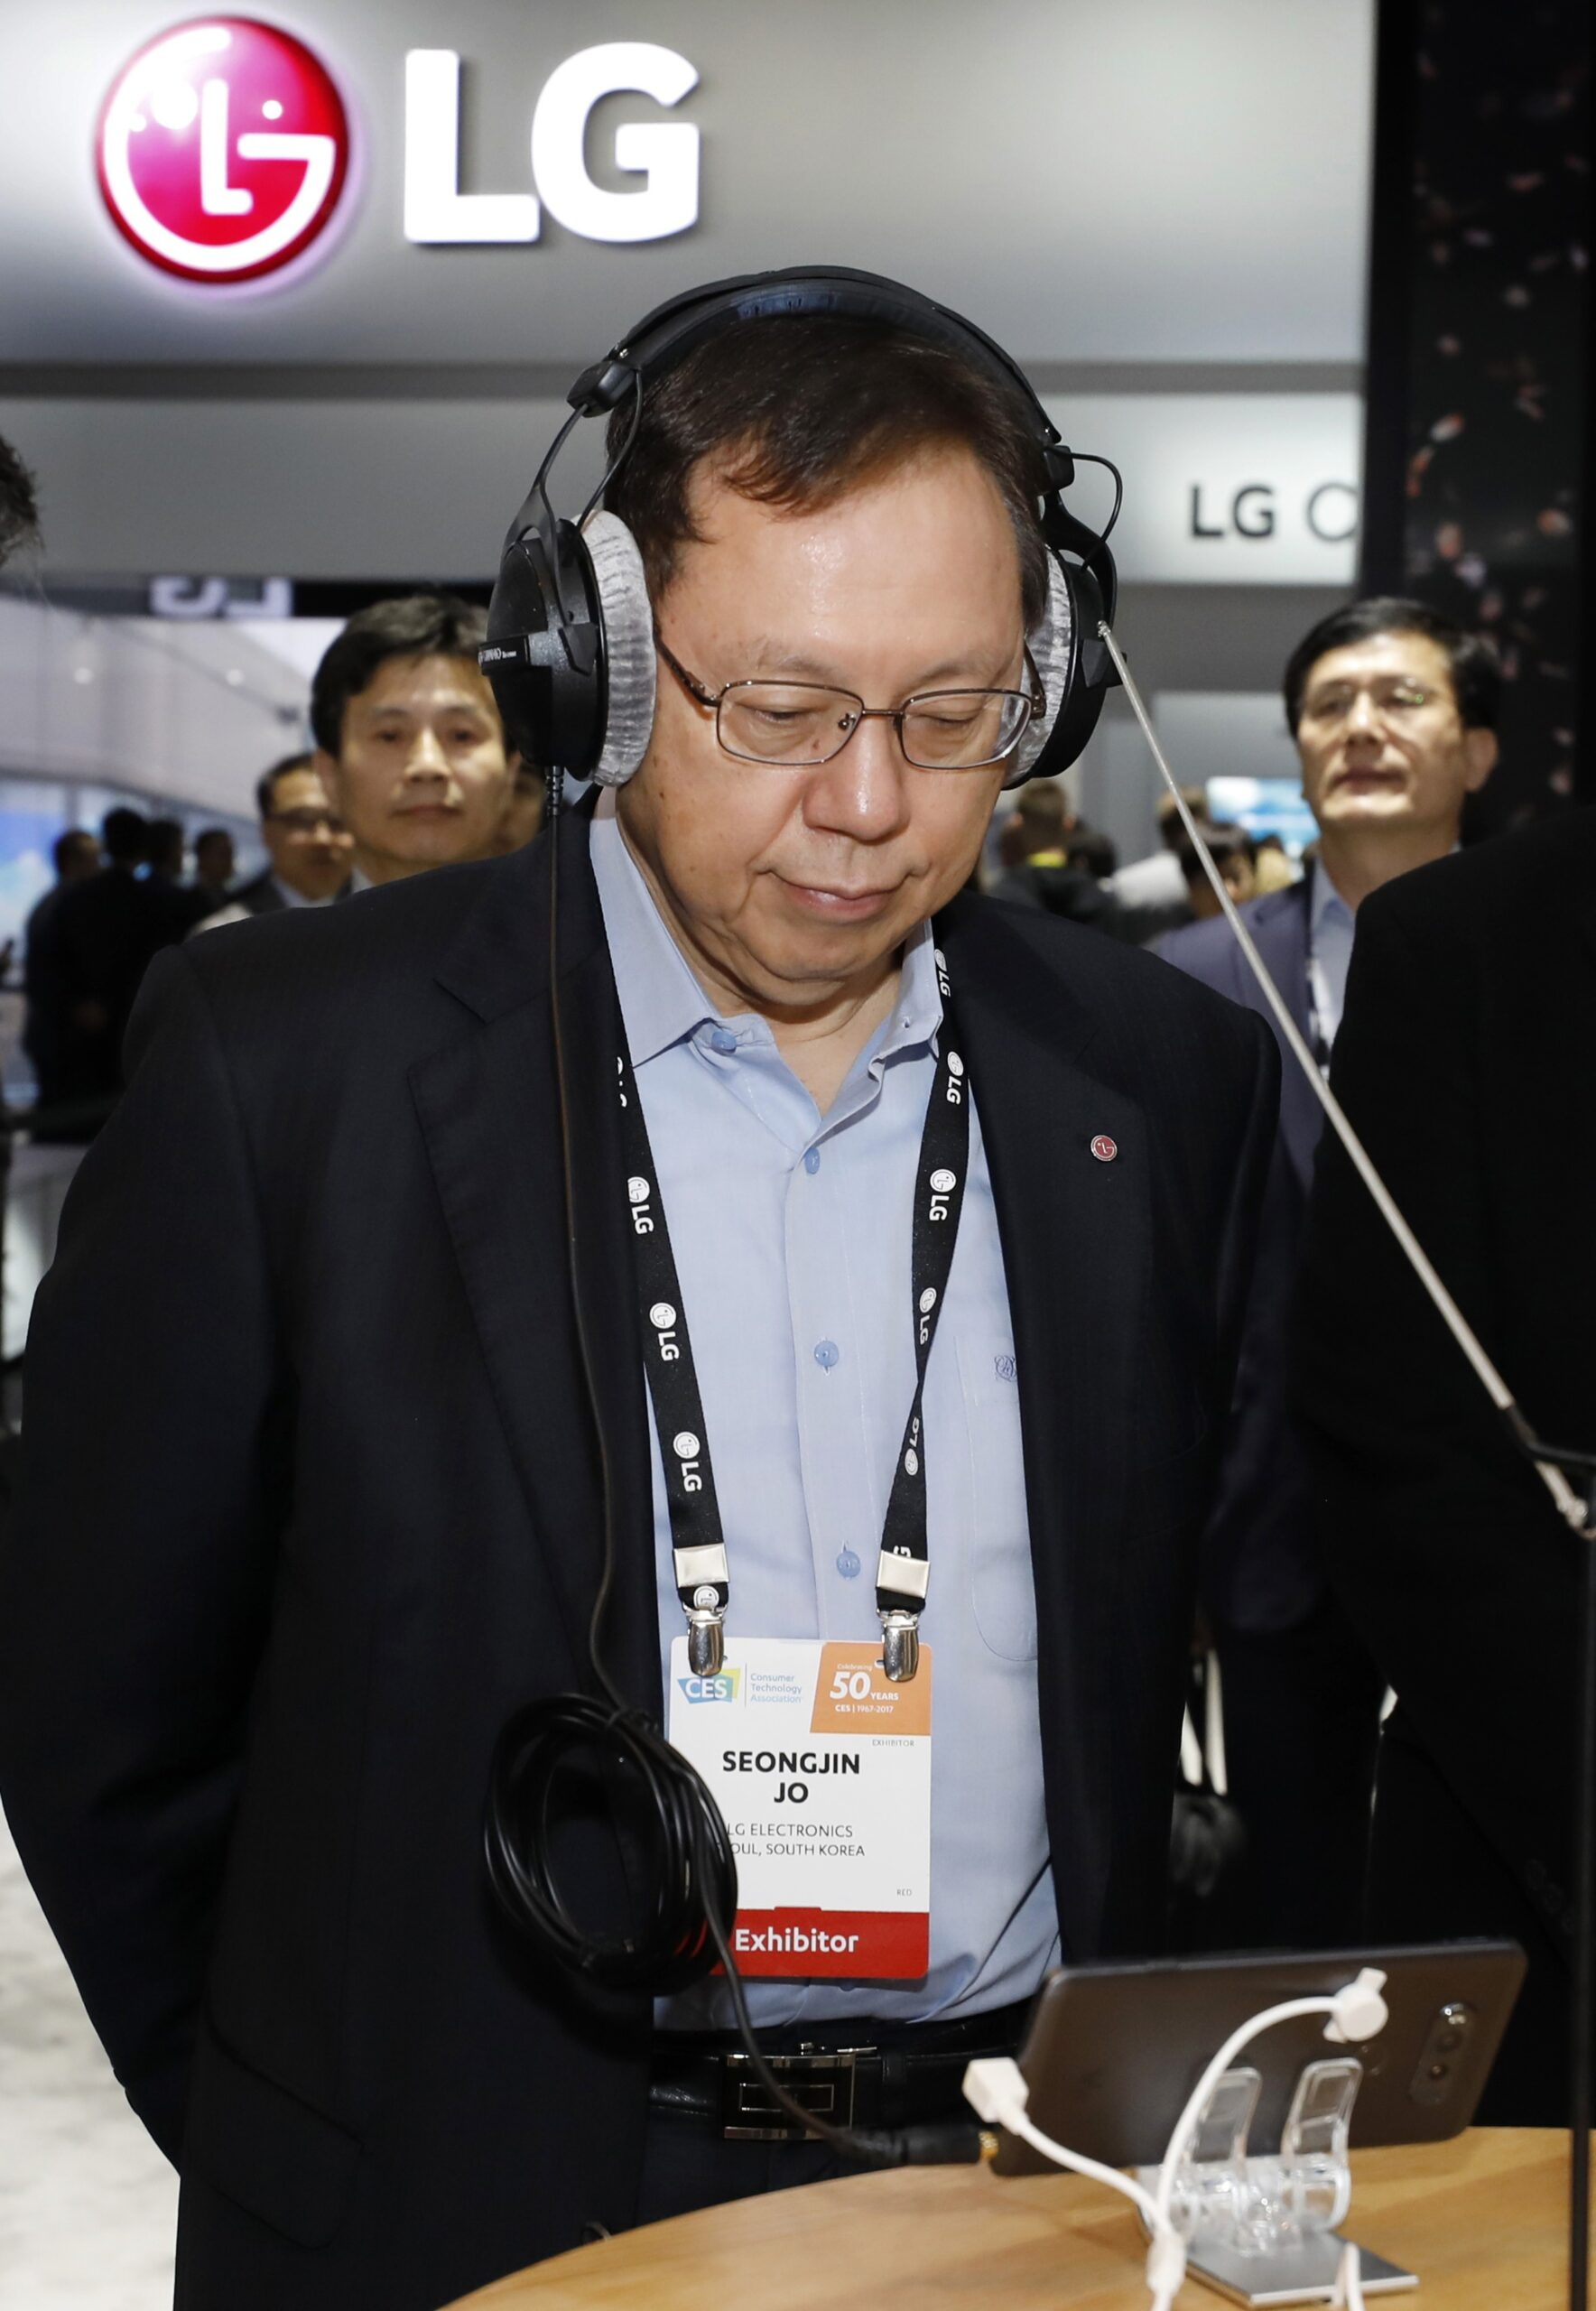 Jo Seong-jin, Vice Chairman and Chief Executive of LG Electronics tests the sound quality of LG's new smartphone via headphones at the company's CES booth.